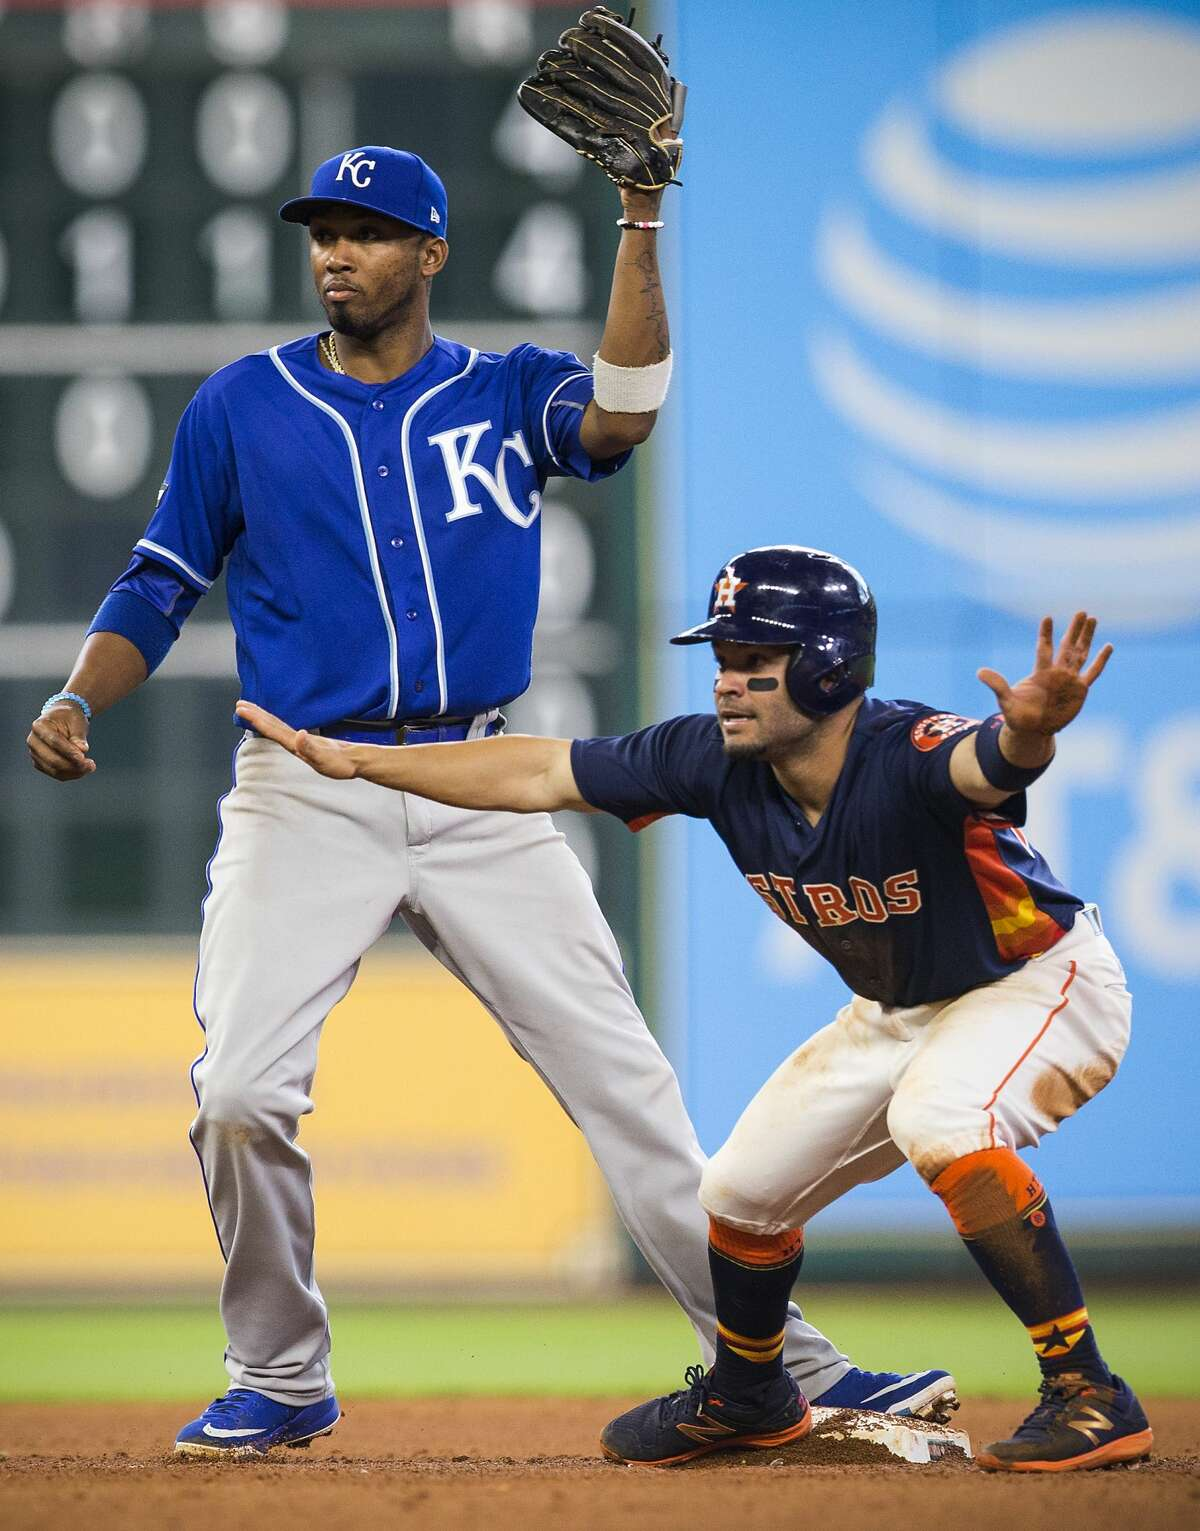 Houston Astros second baseman Jose Altuve (27) signals safe after stealing second under the tag of Kansas City Royals shortstop Alcides Escobar during the eighth inning of a major league baseball game at Minute Maid Park on Sunday, April 9, 2017, in Houston. ( Brett Coomer / Houston Chronicle )